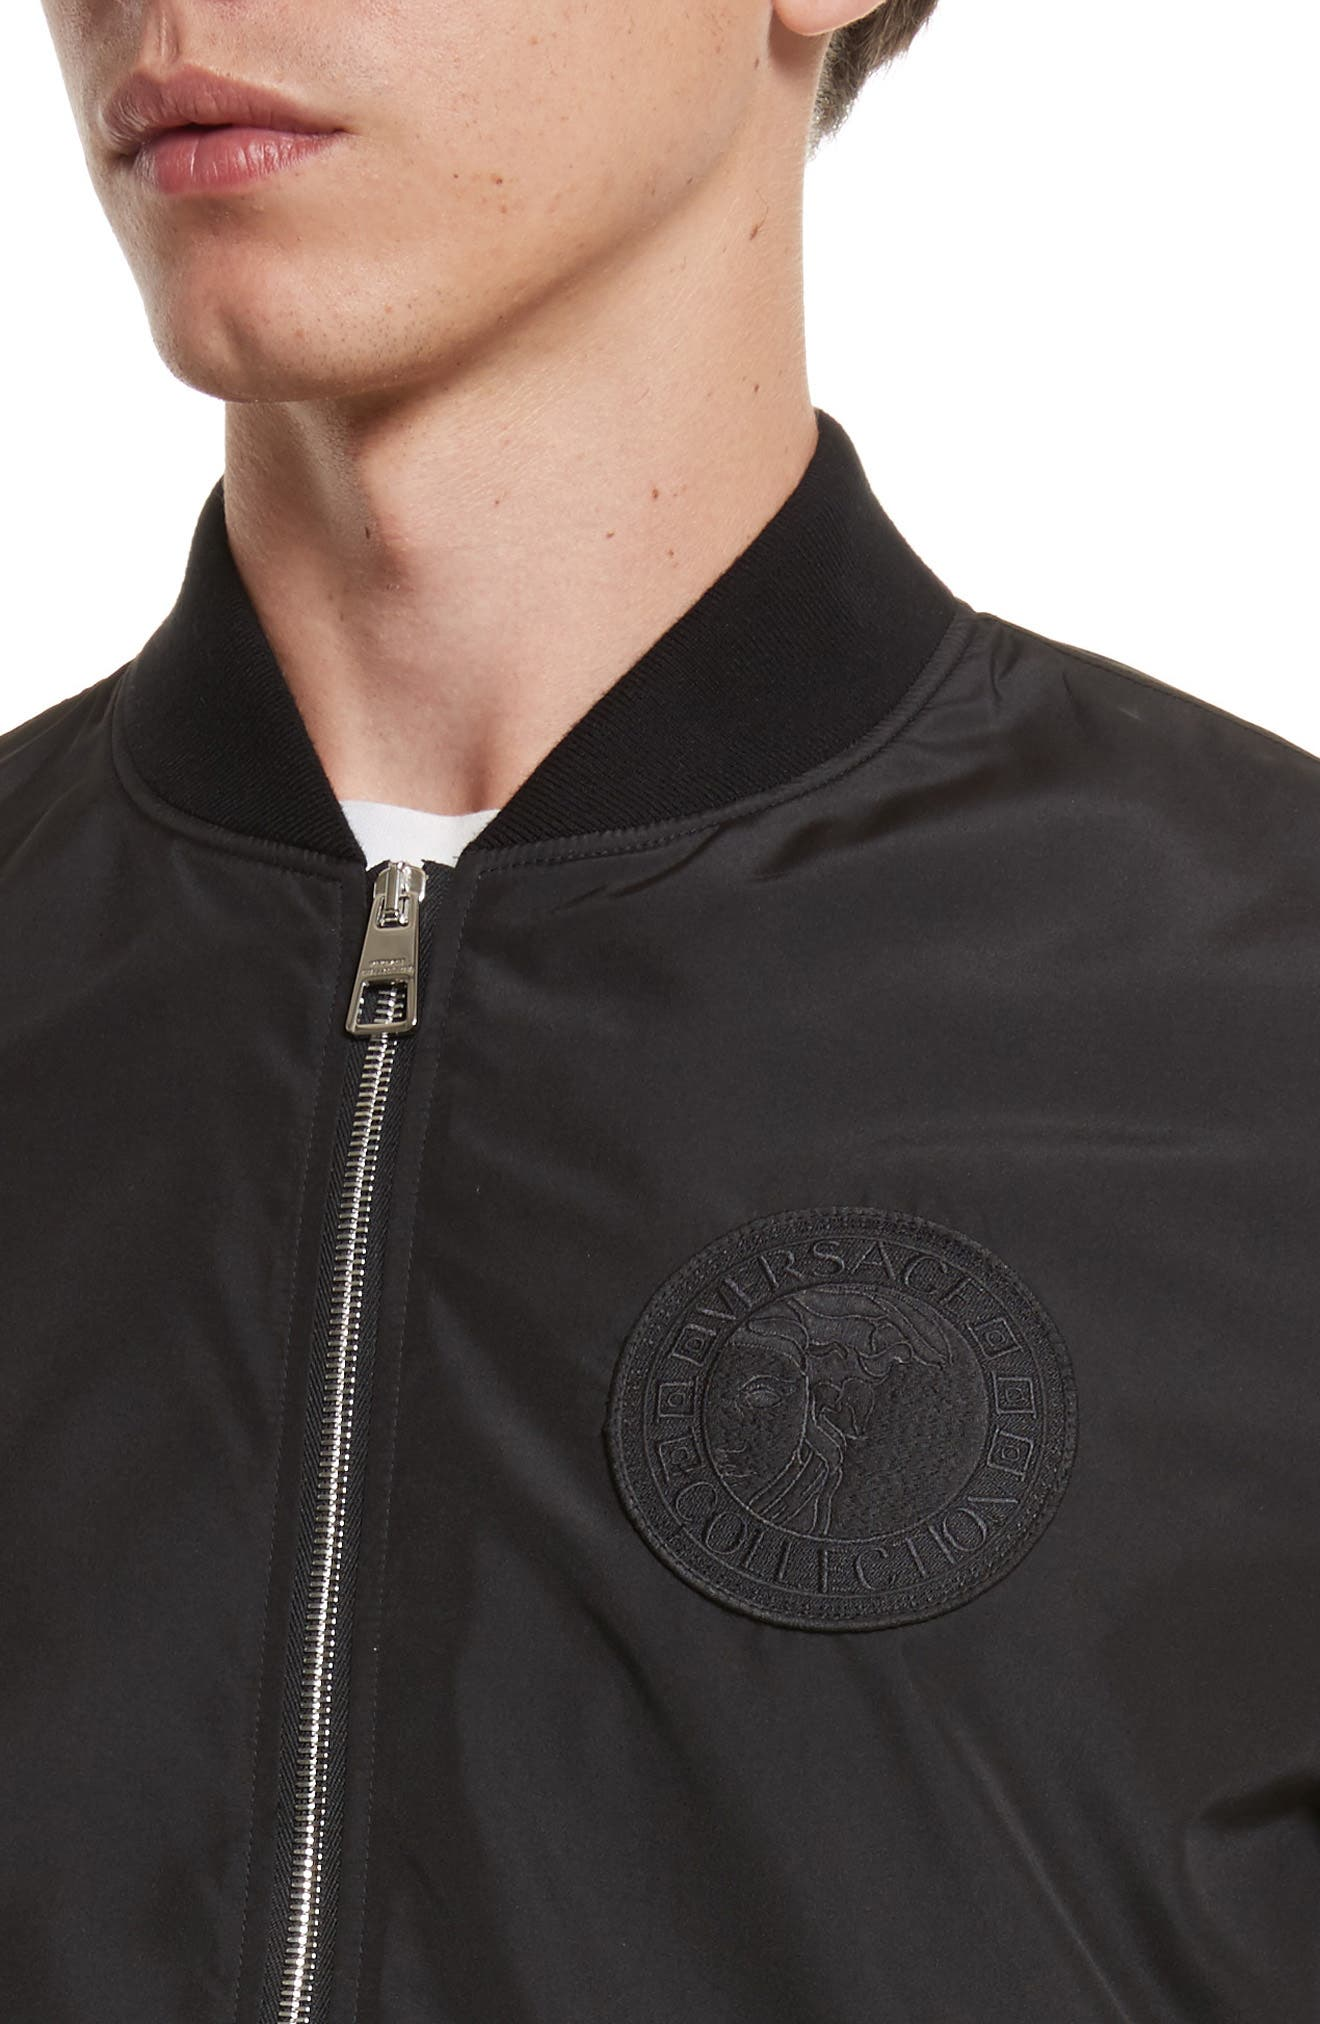 Bomber Jacket with Patch,                             Alternate thumbnail 4, color,                             130